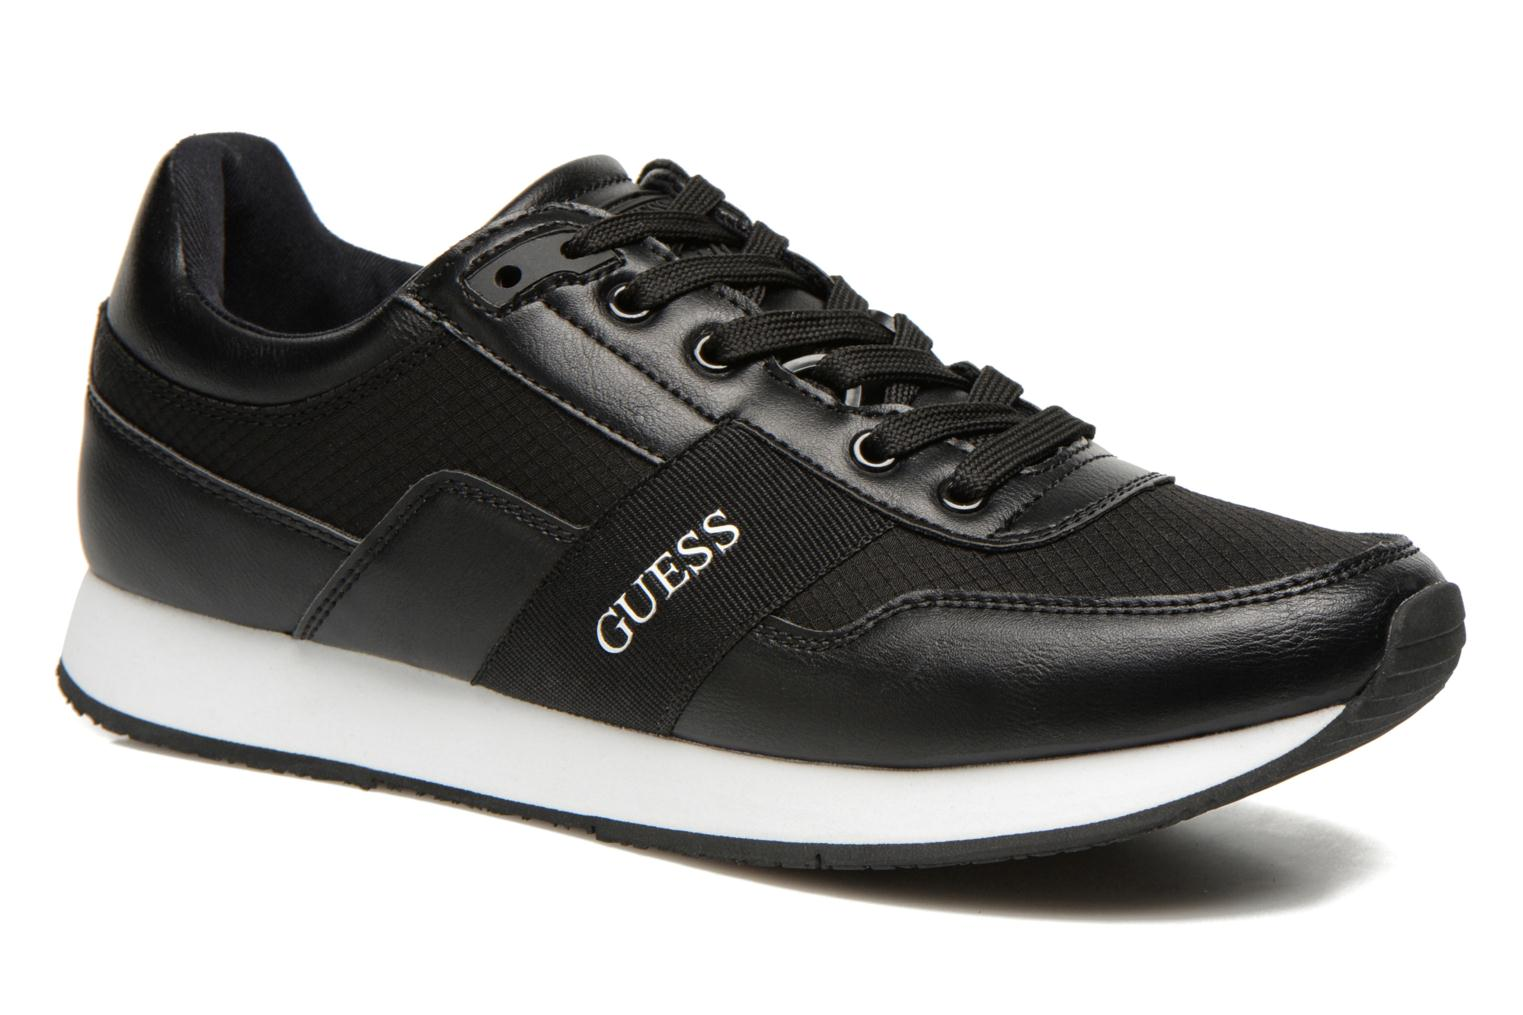 Sneakers Nicolas by Guess